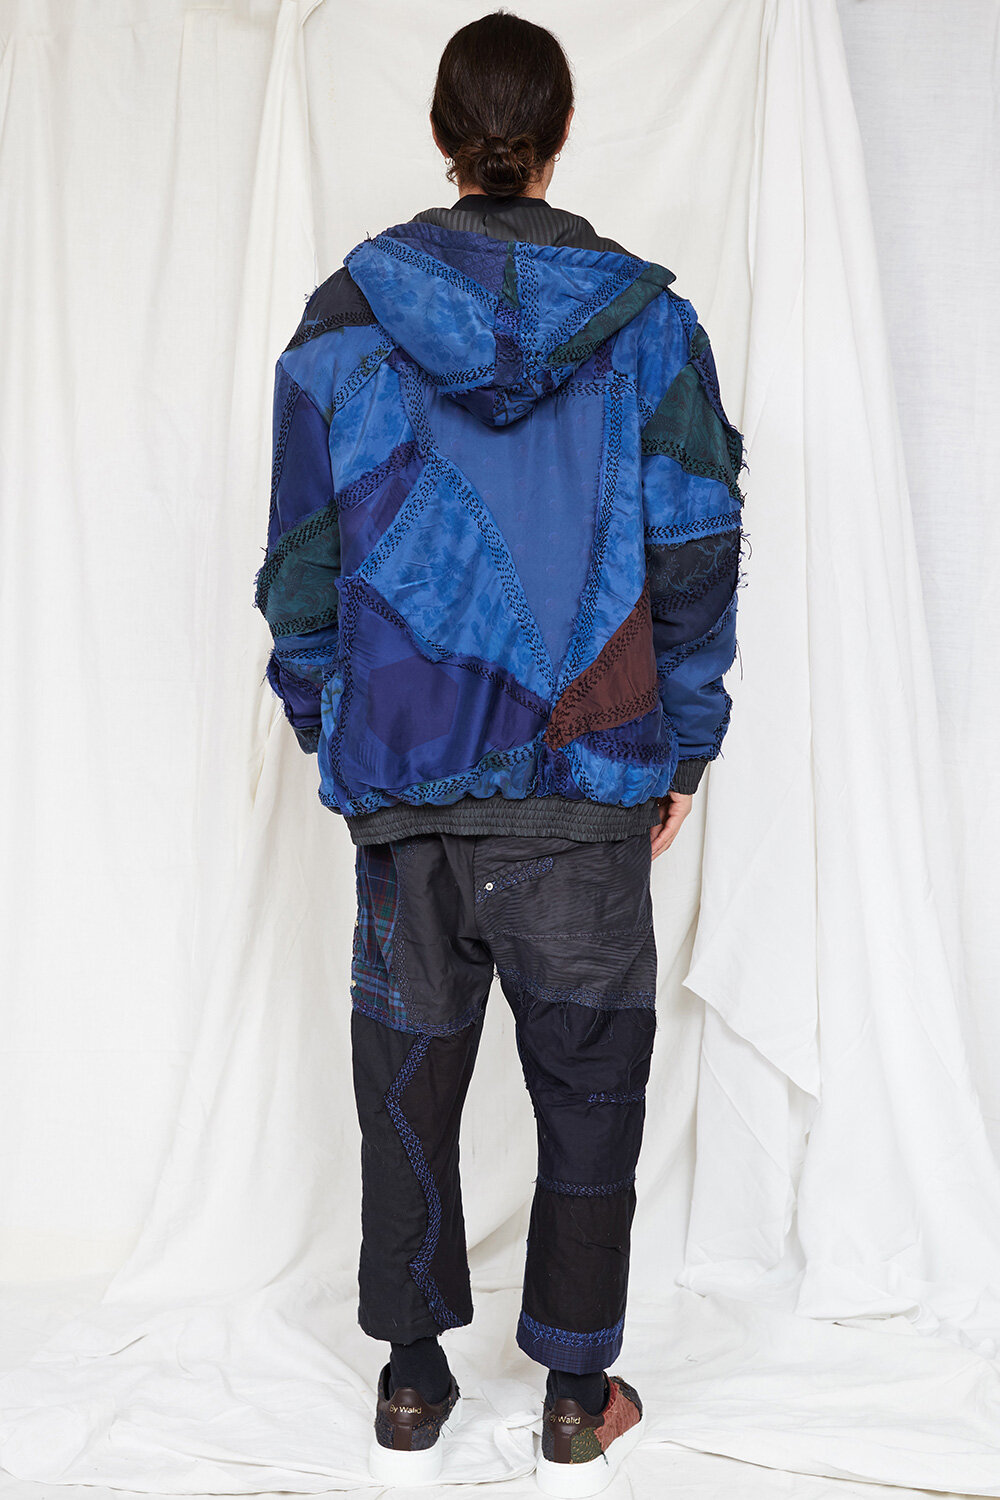 By Walid Campaign Phoenix Patch Work Hoddie in Navy AW20